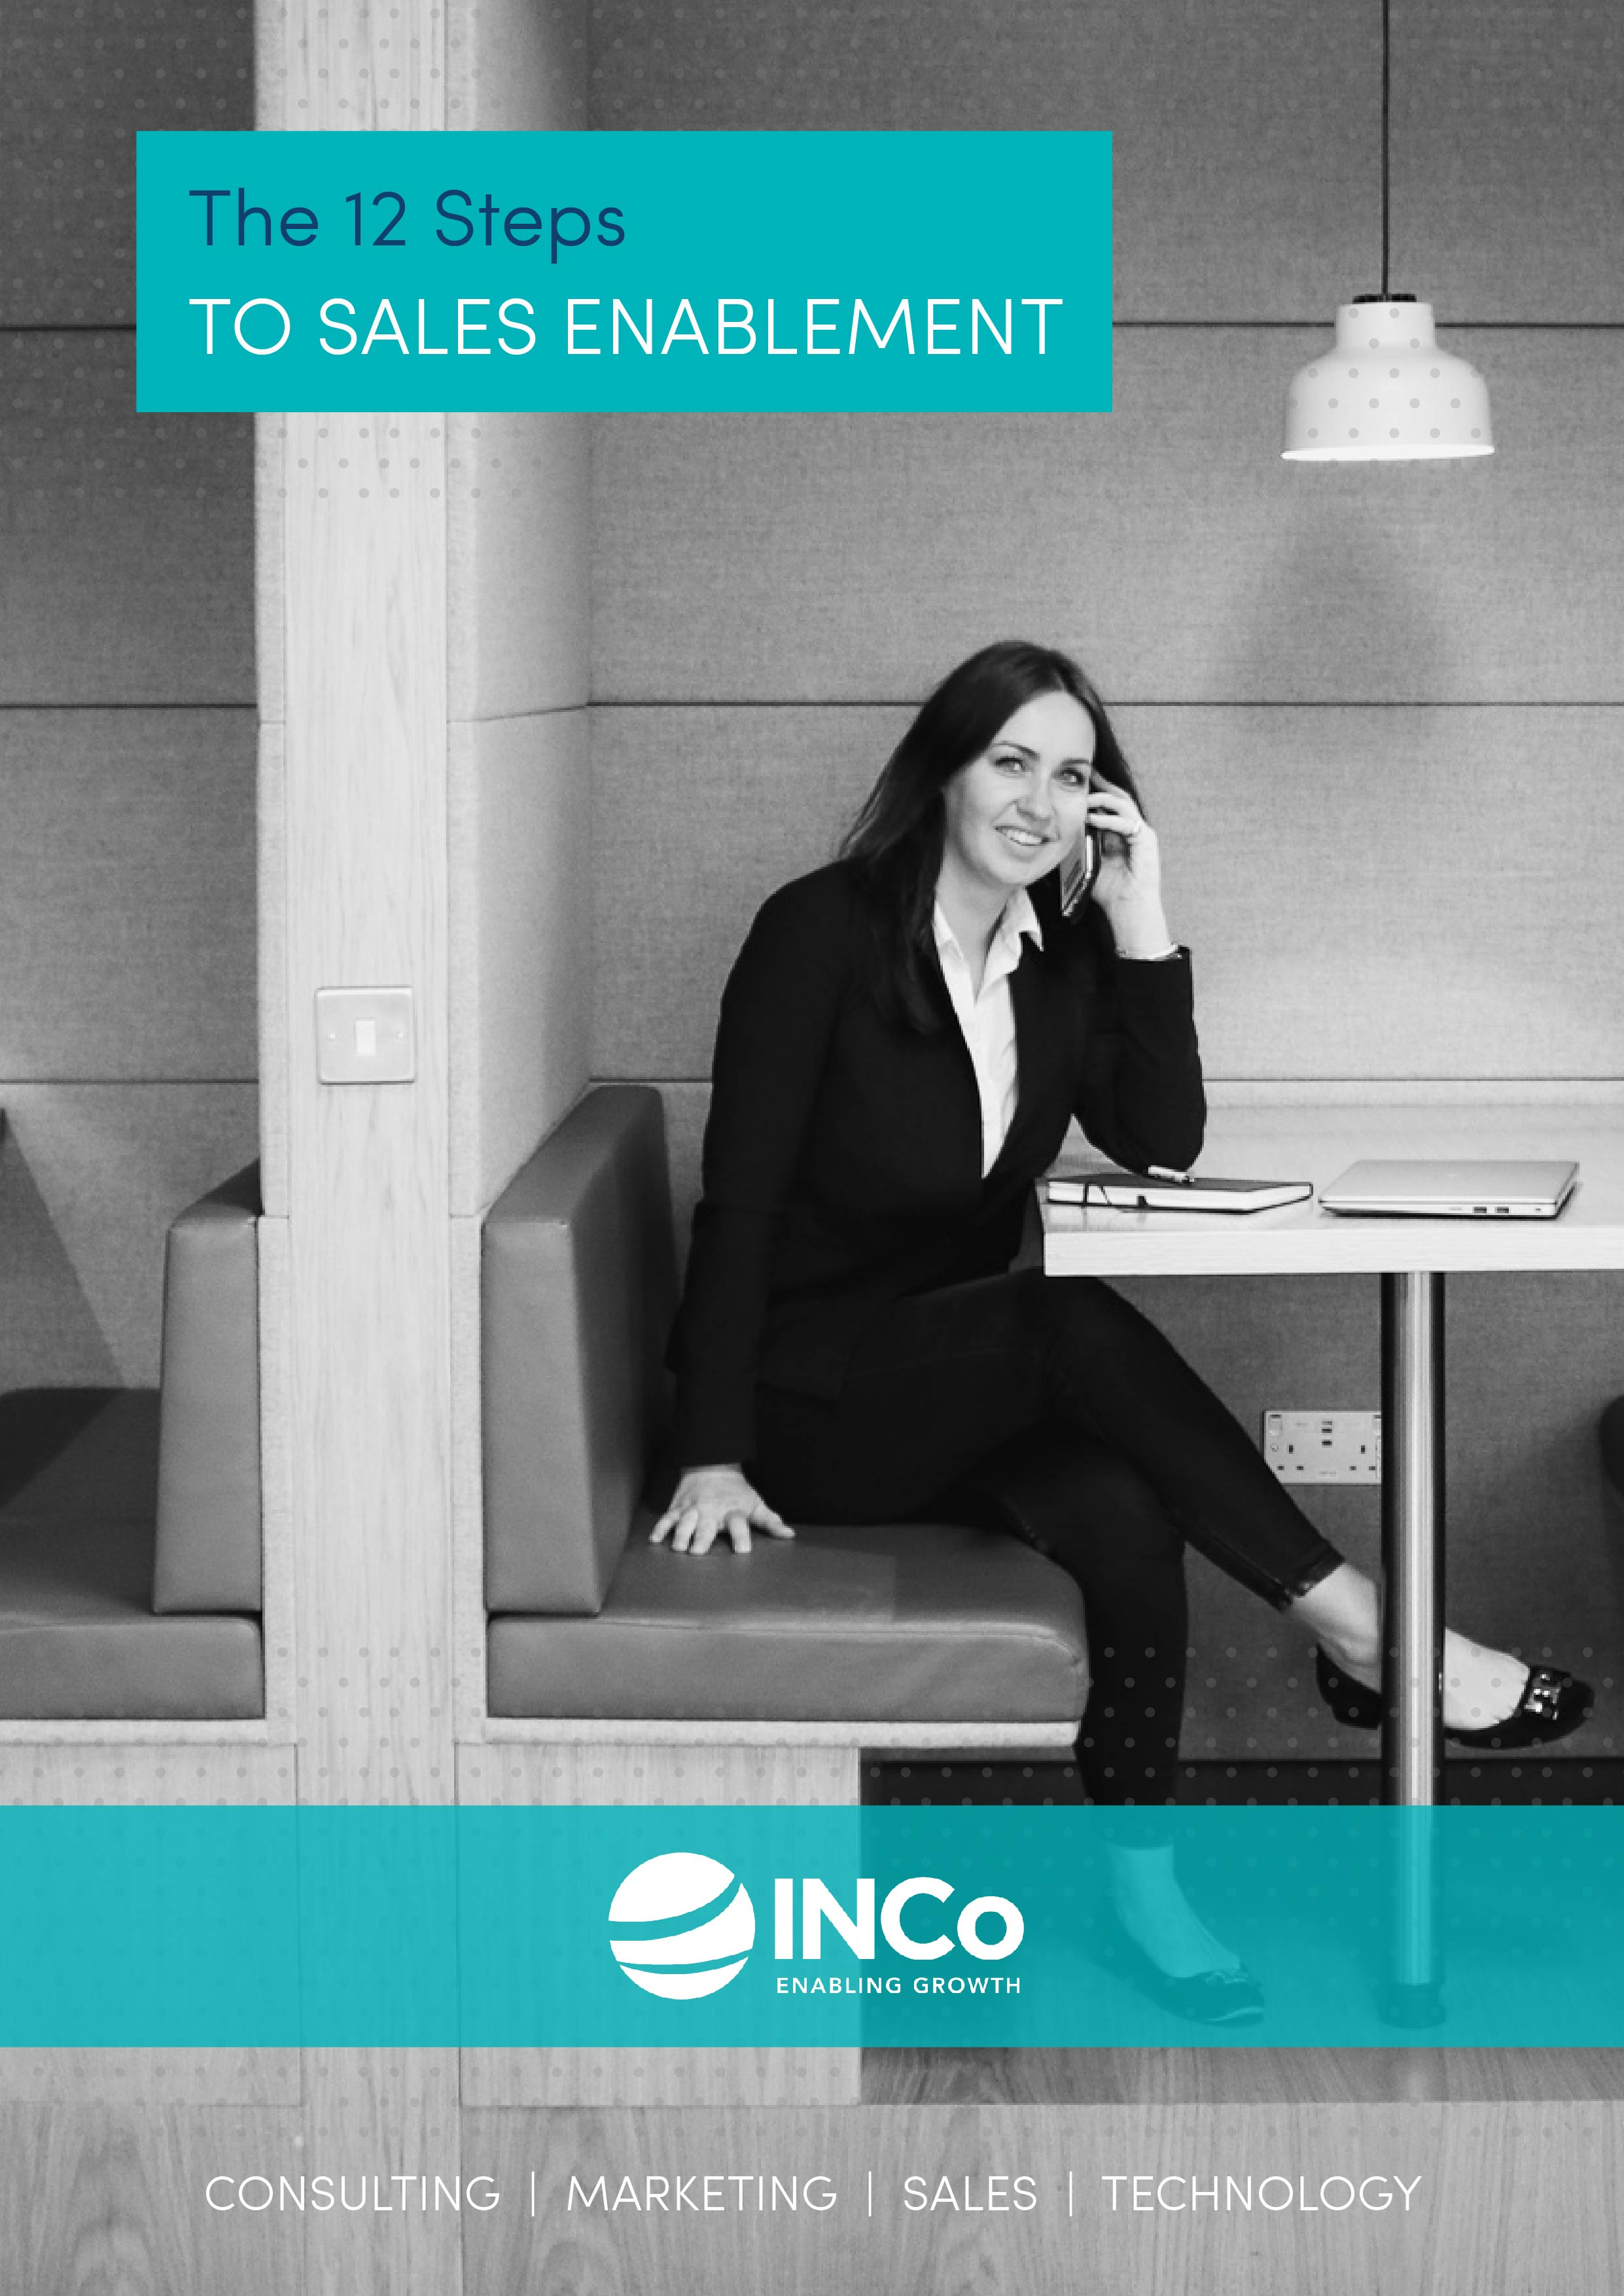 INCo - The 12 Steps to Sales Enablement - Portrait Cover